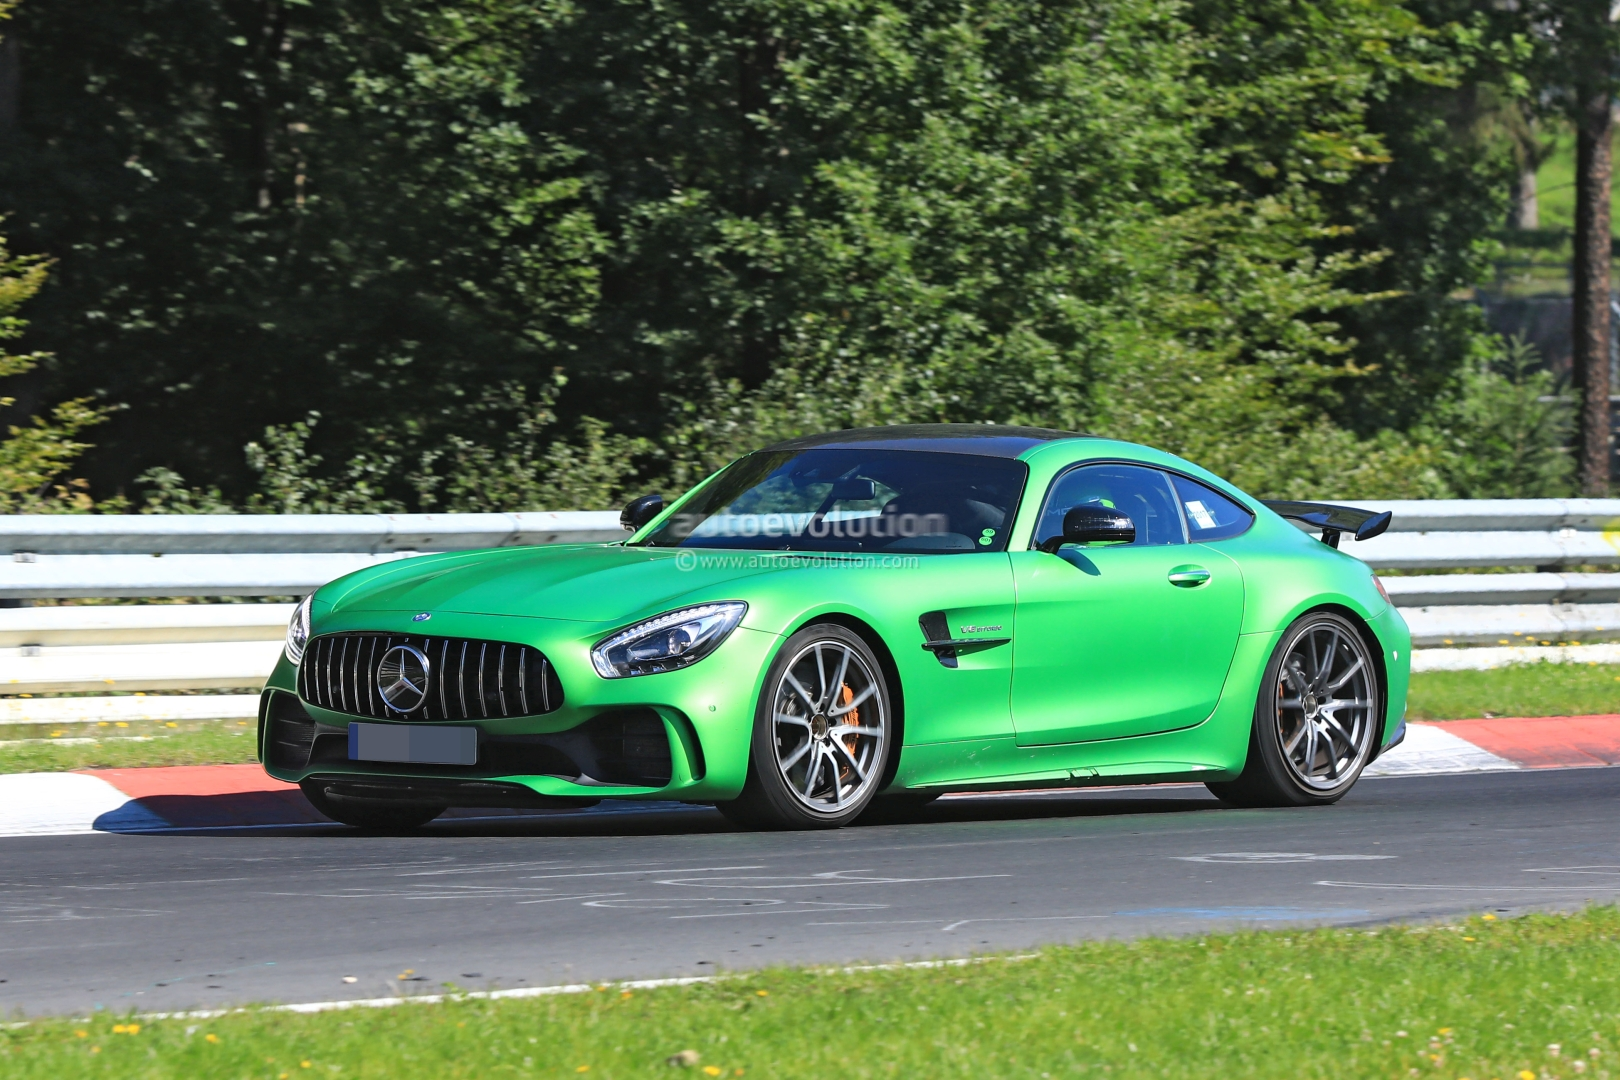 spyshots: mercedes-amg gt4 gets road version, targets sub-7m